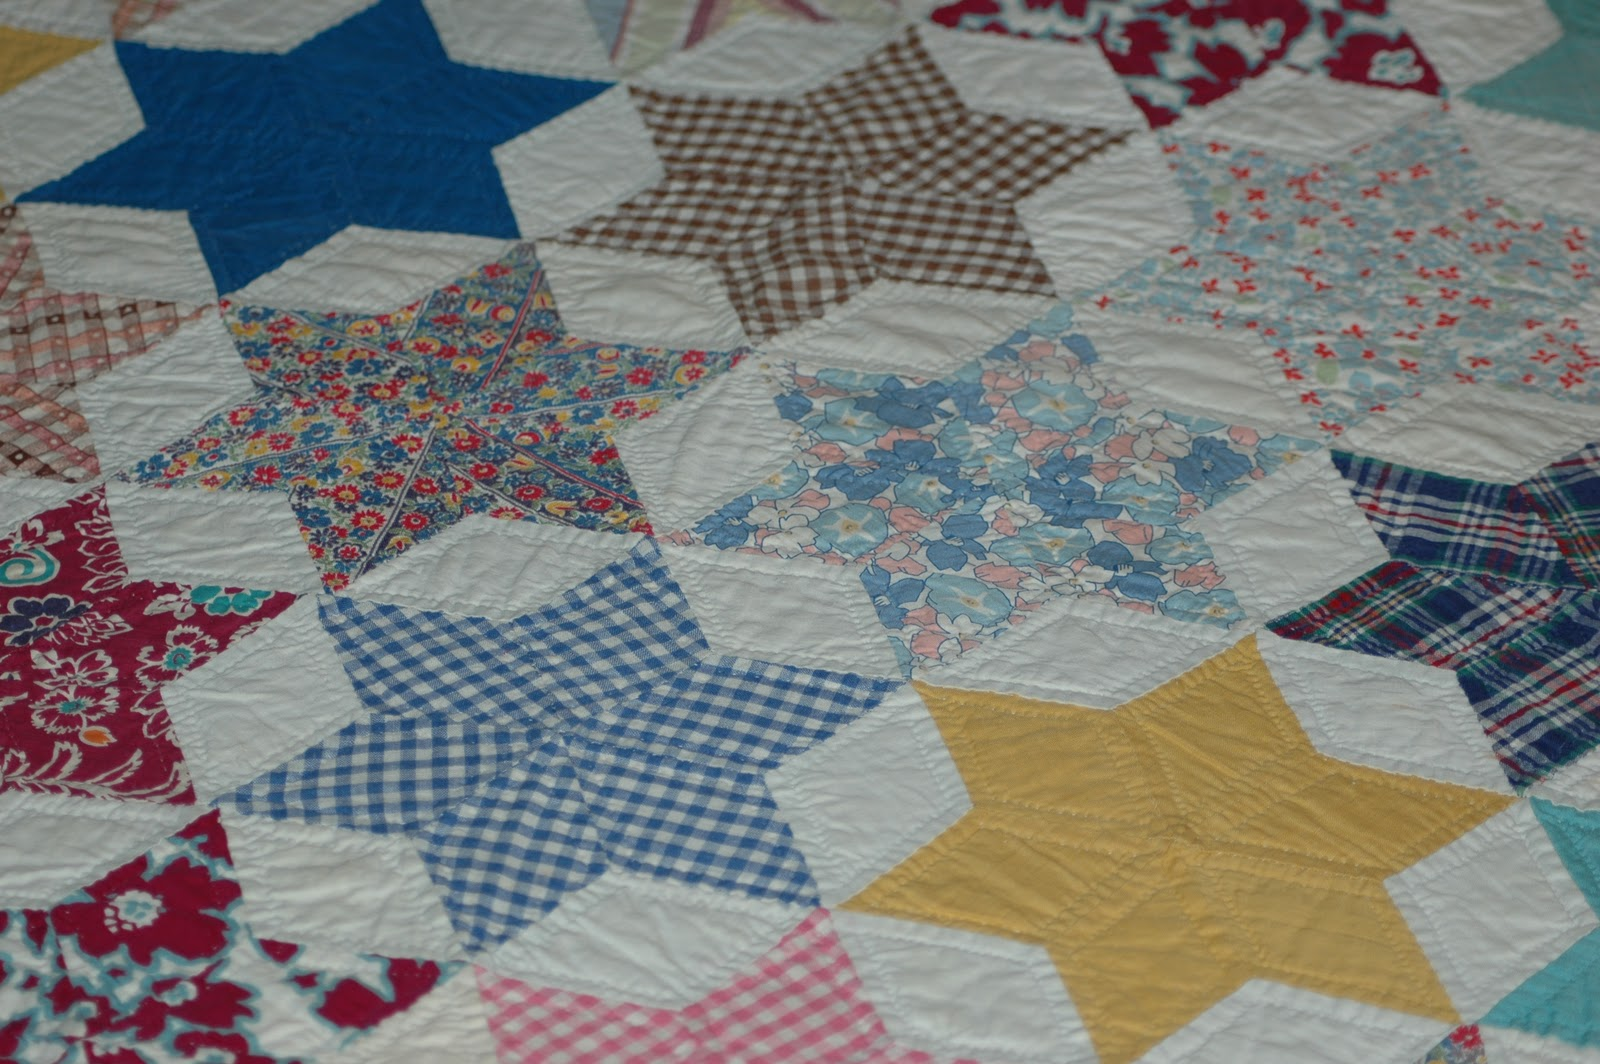 Sewn and Grown: The Quilts that Raised Me